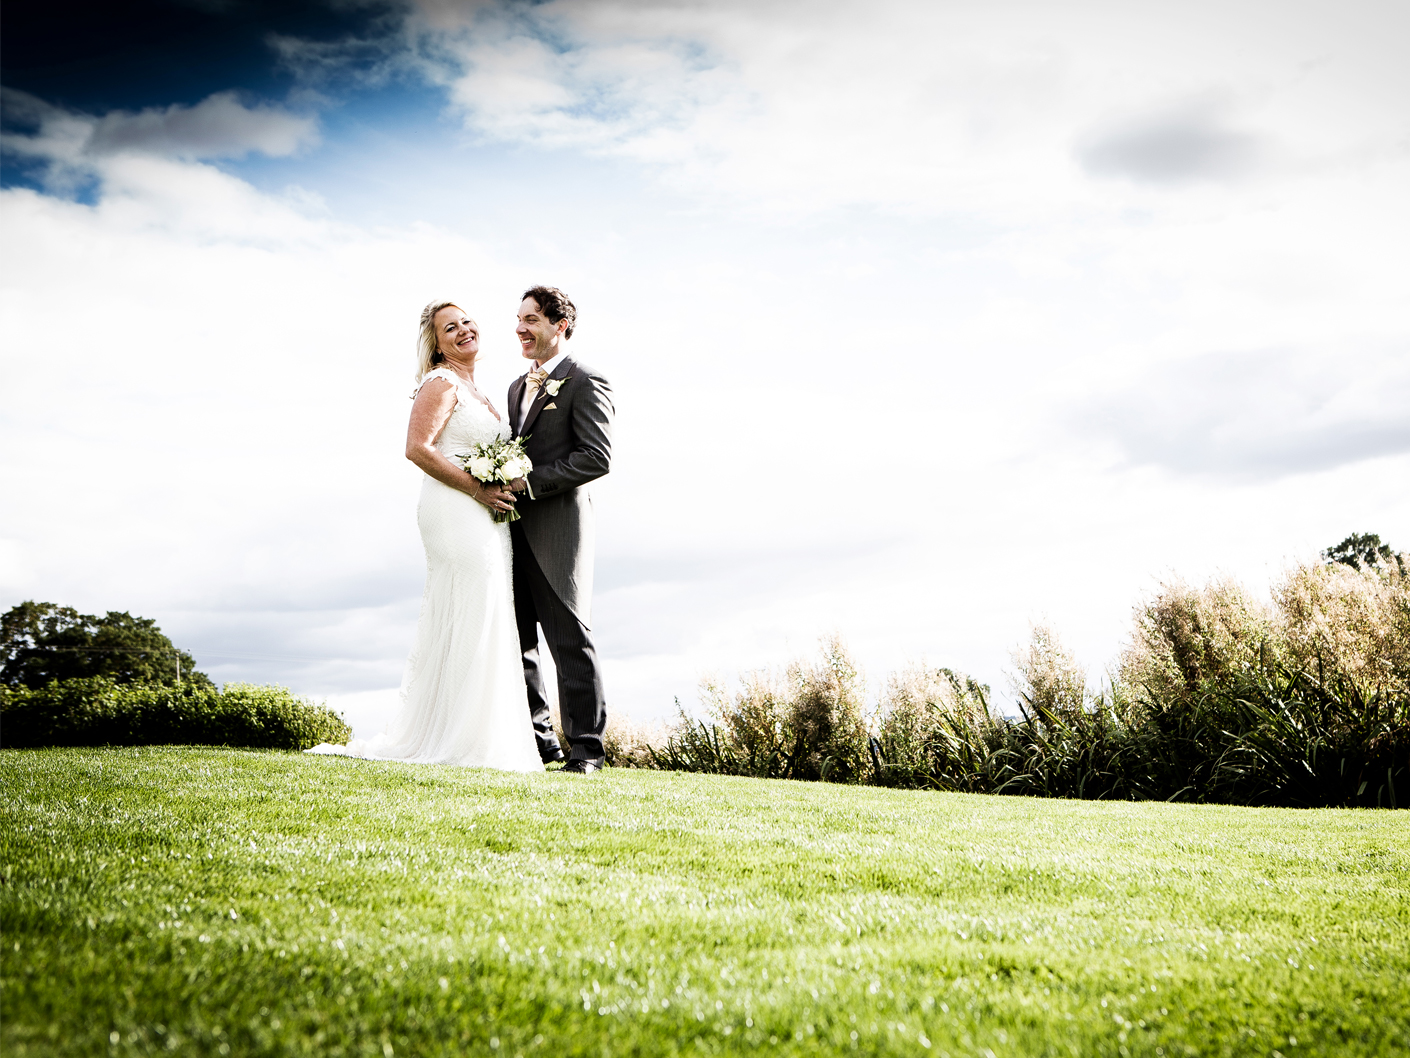 the-bride-and-grooms-wedding-photography-at-sandhole-oak-barn-congleton-cheshire